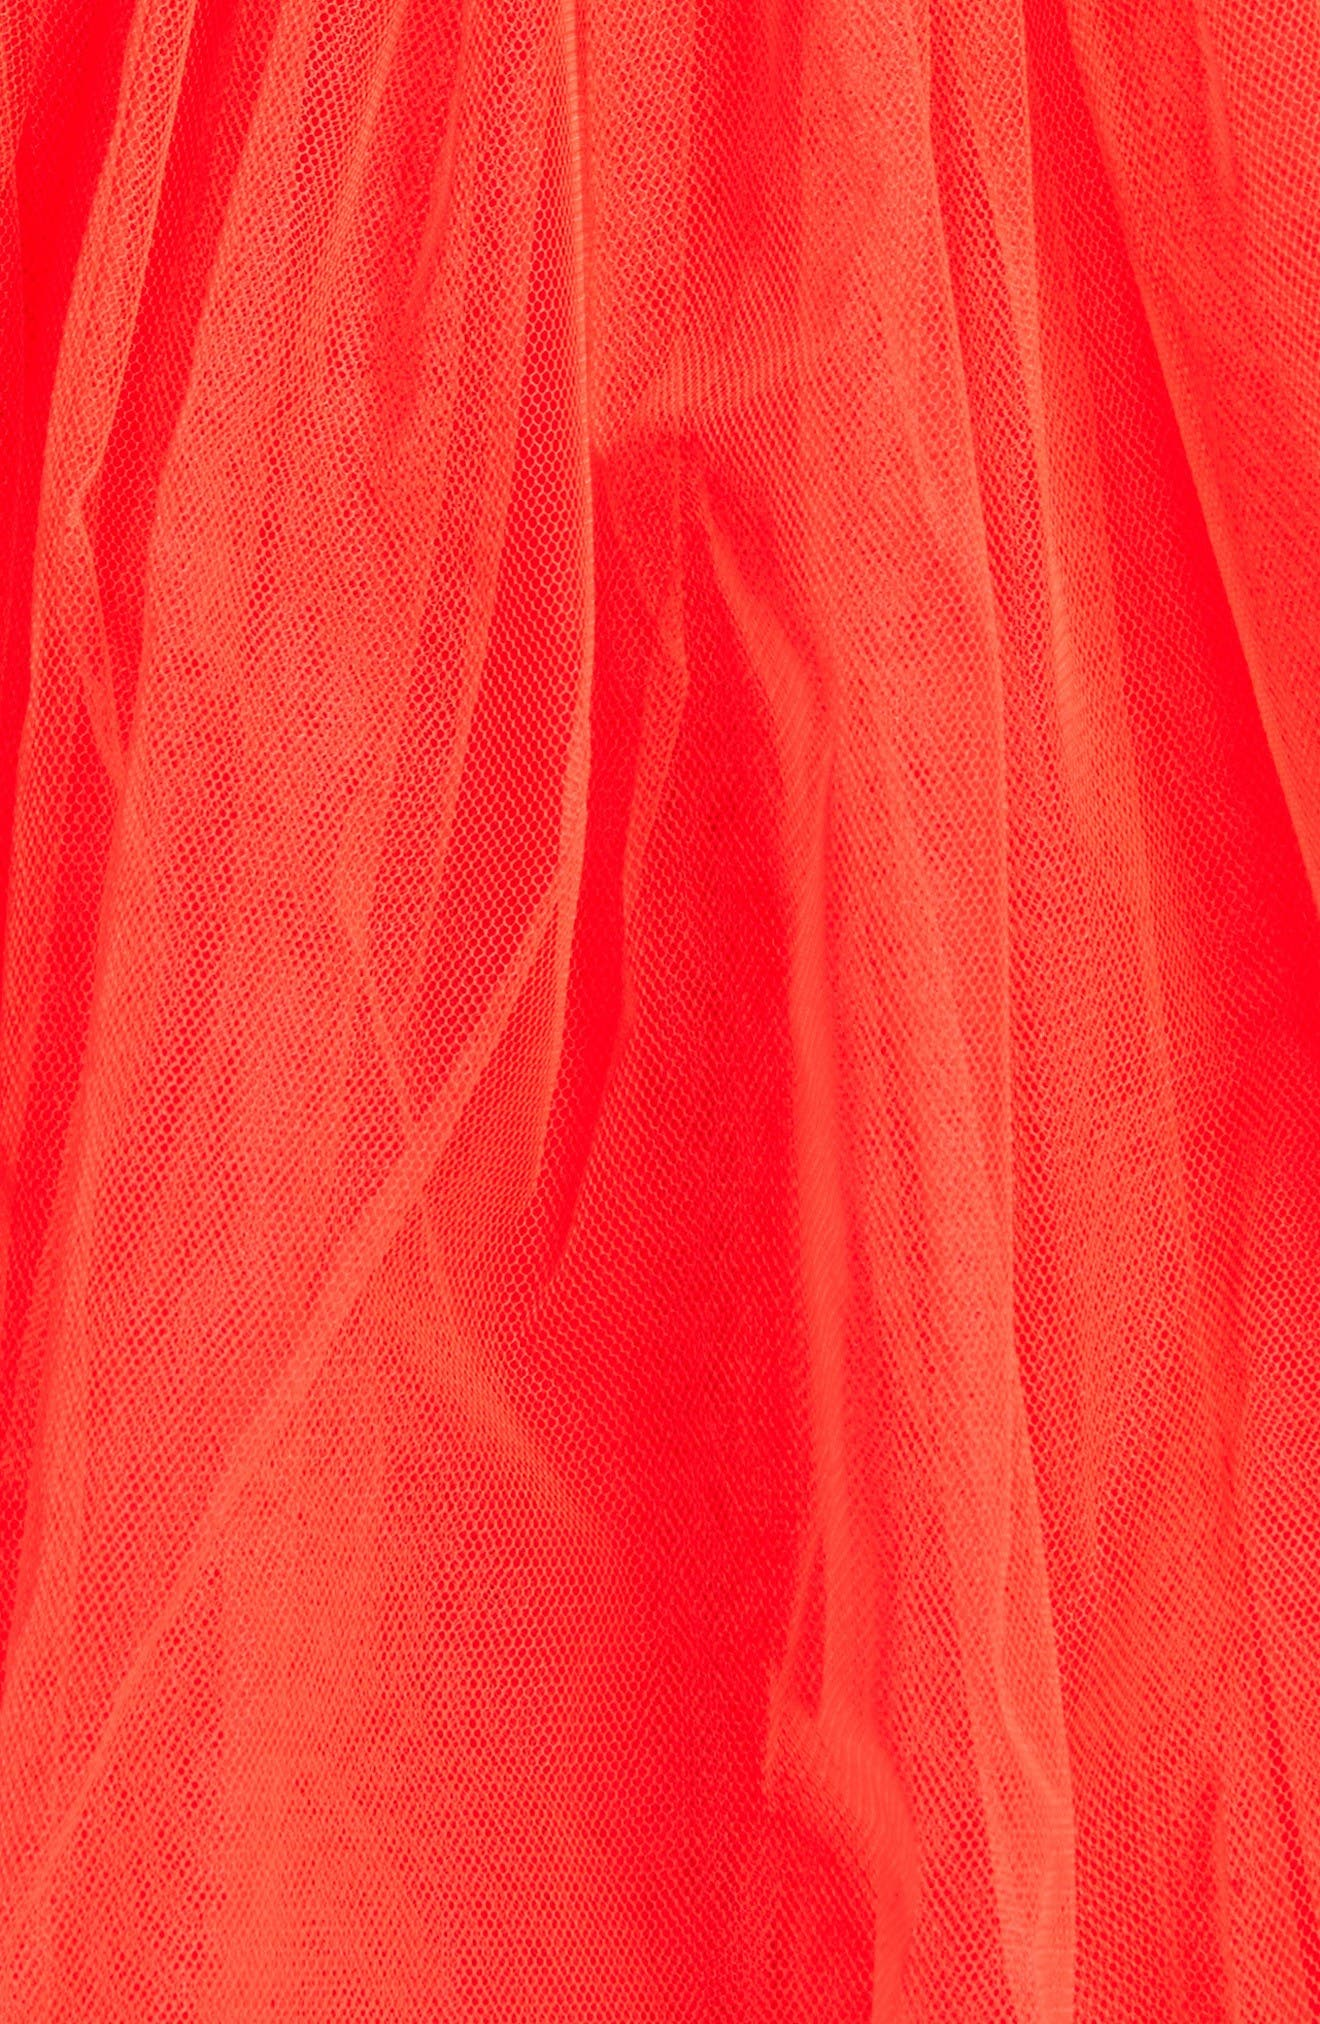 Alternate Image 3  - Molly Goddard Gathered Tulle Skirt (Nordstrom Exclusive)